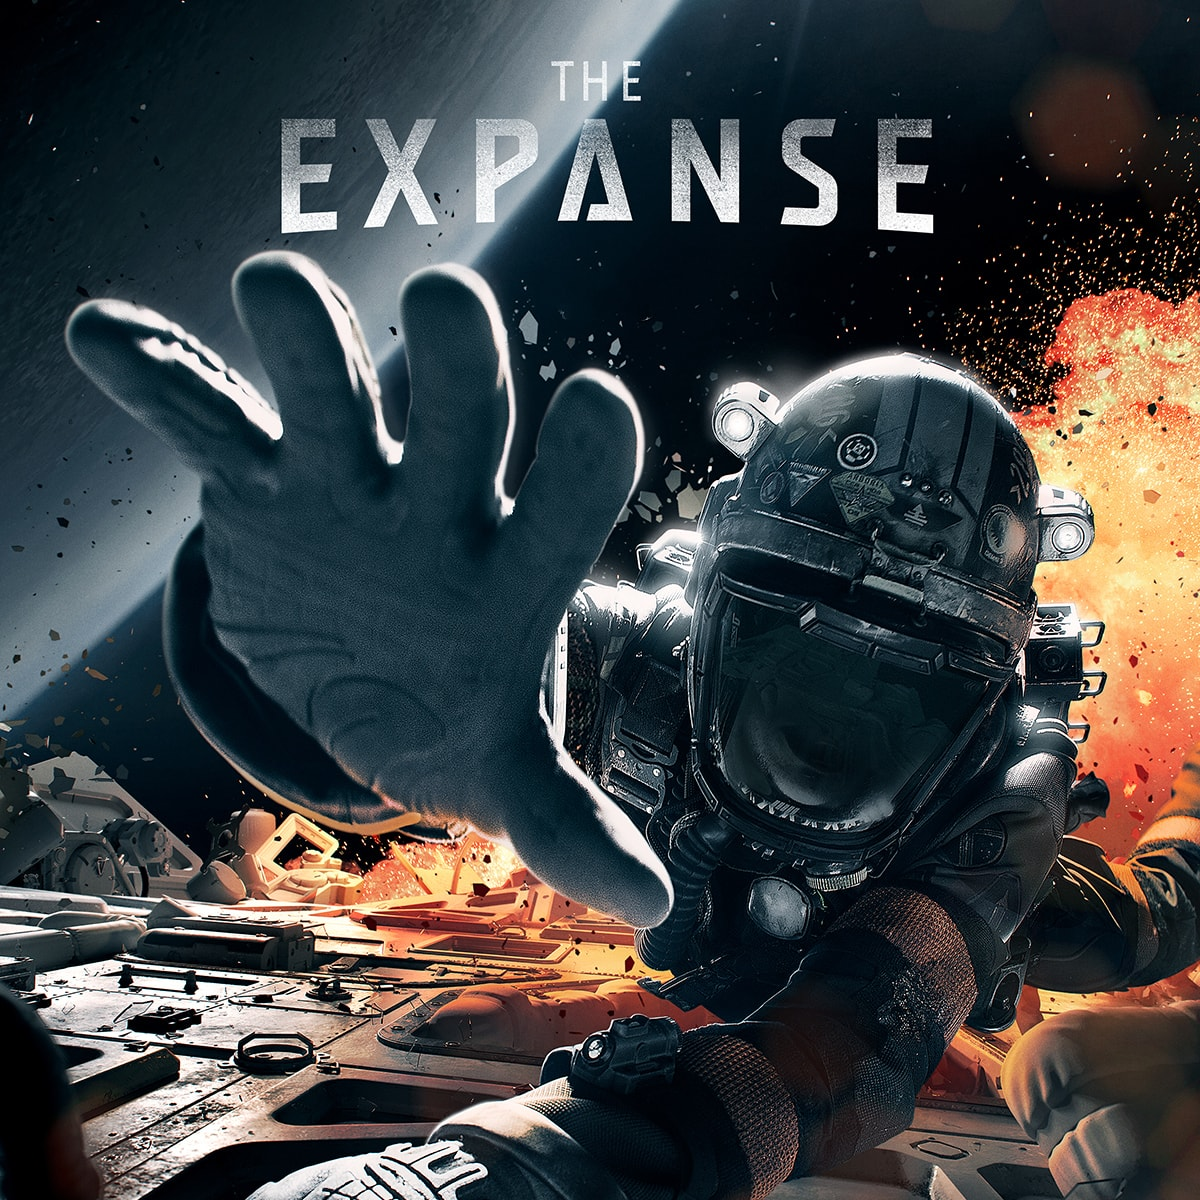 Amsterdam Fall Wallpaper The Expanse Amazon Promos Television Promos